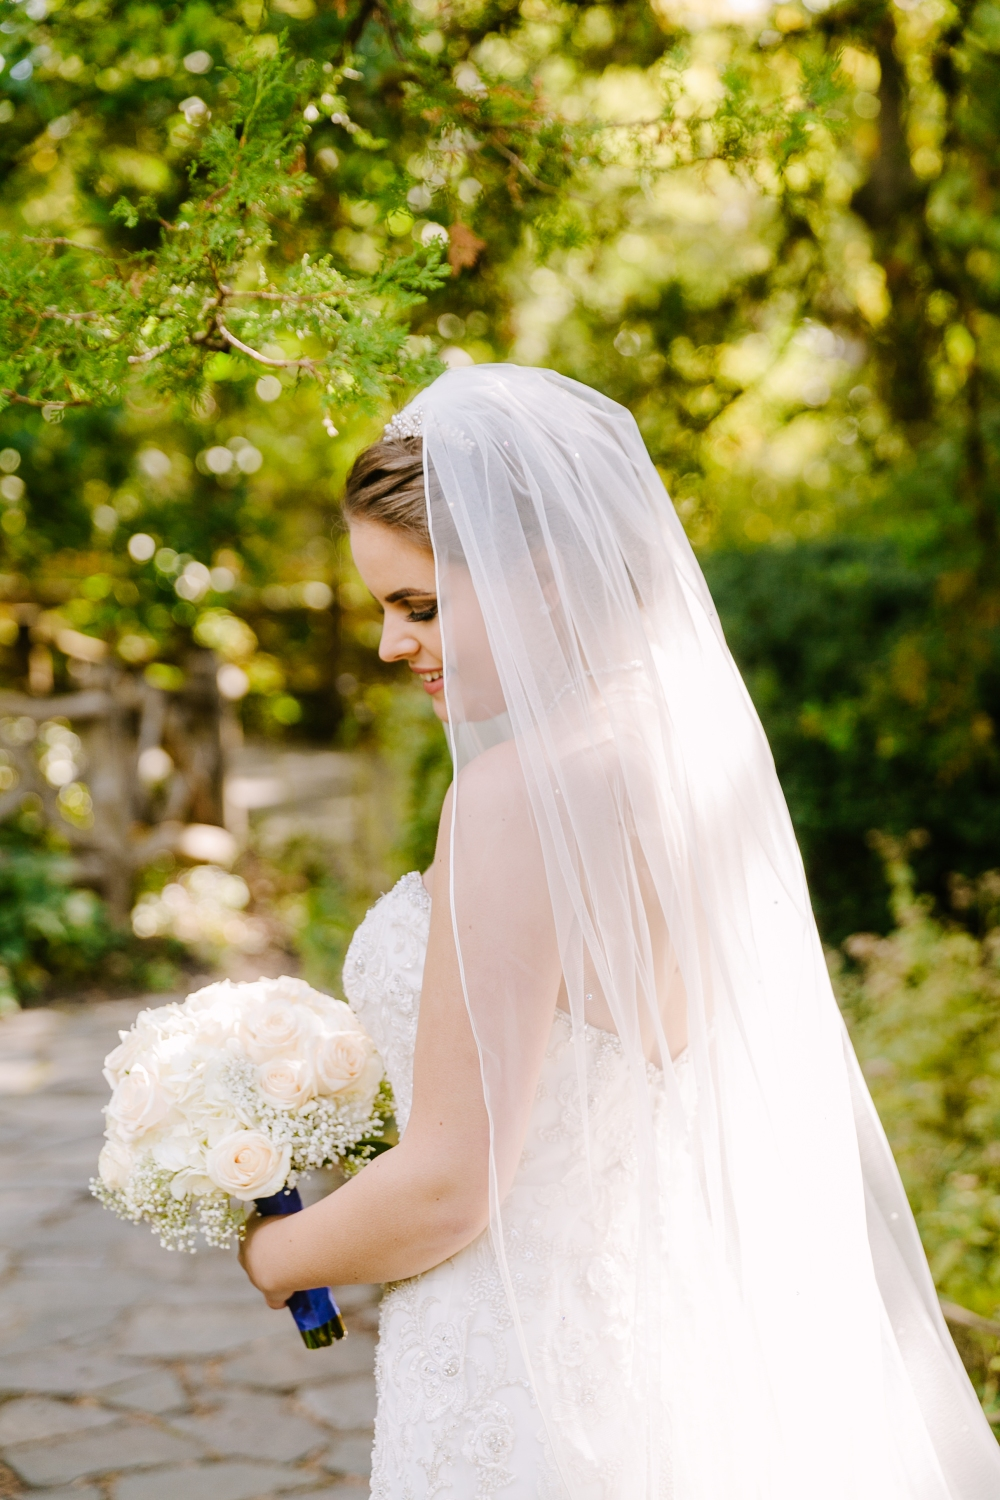 central-park_wedding-mj-79